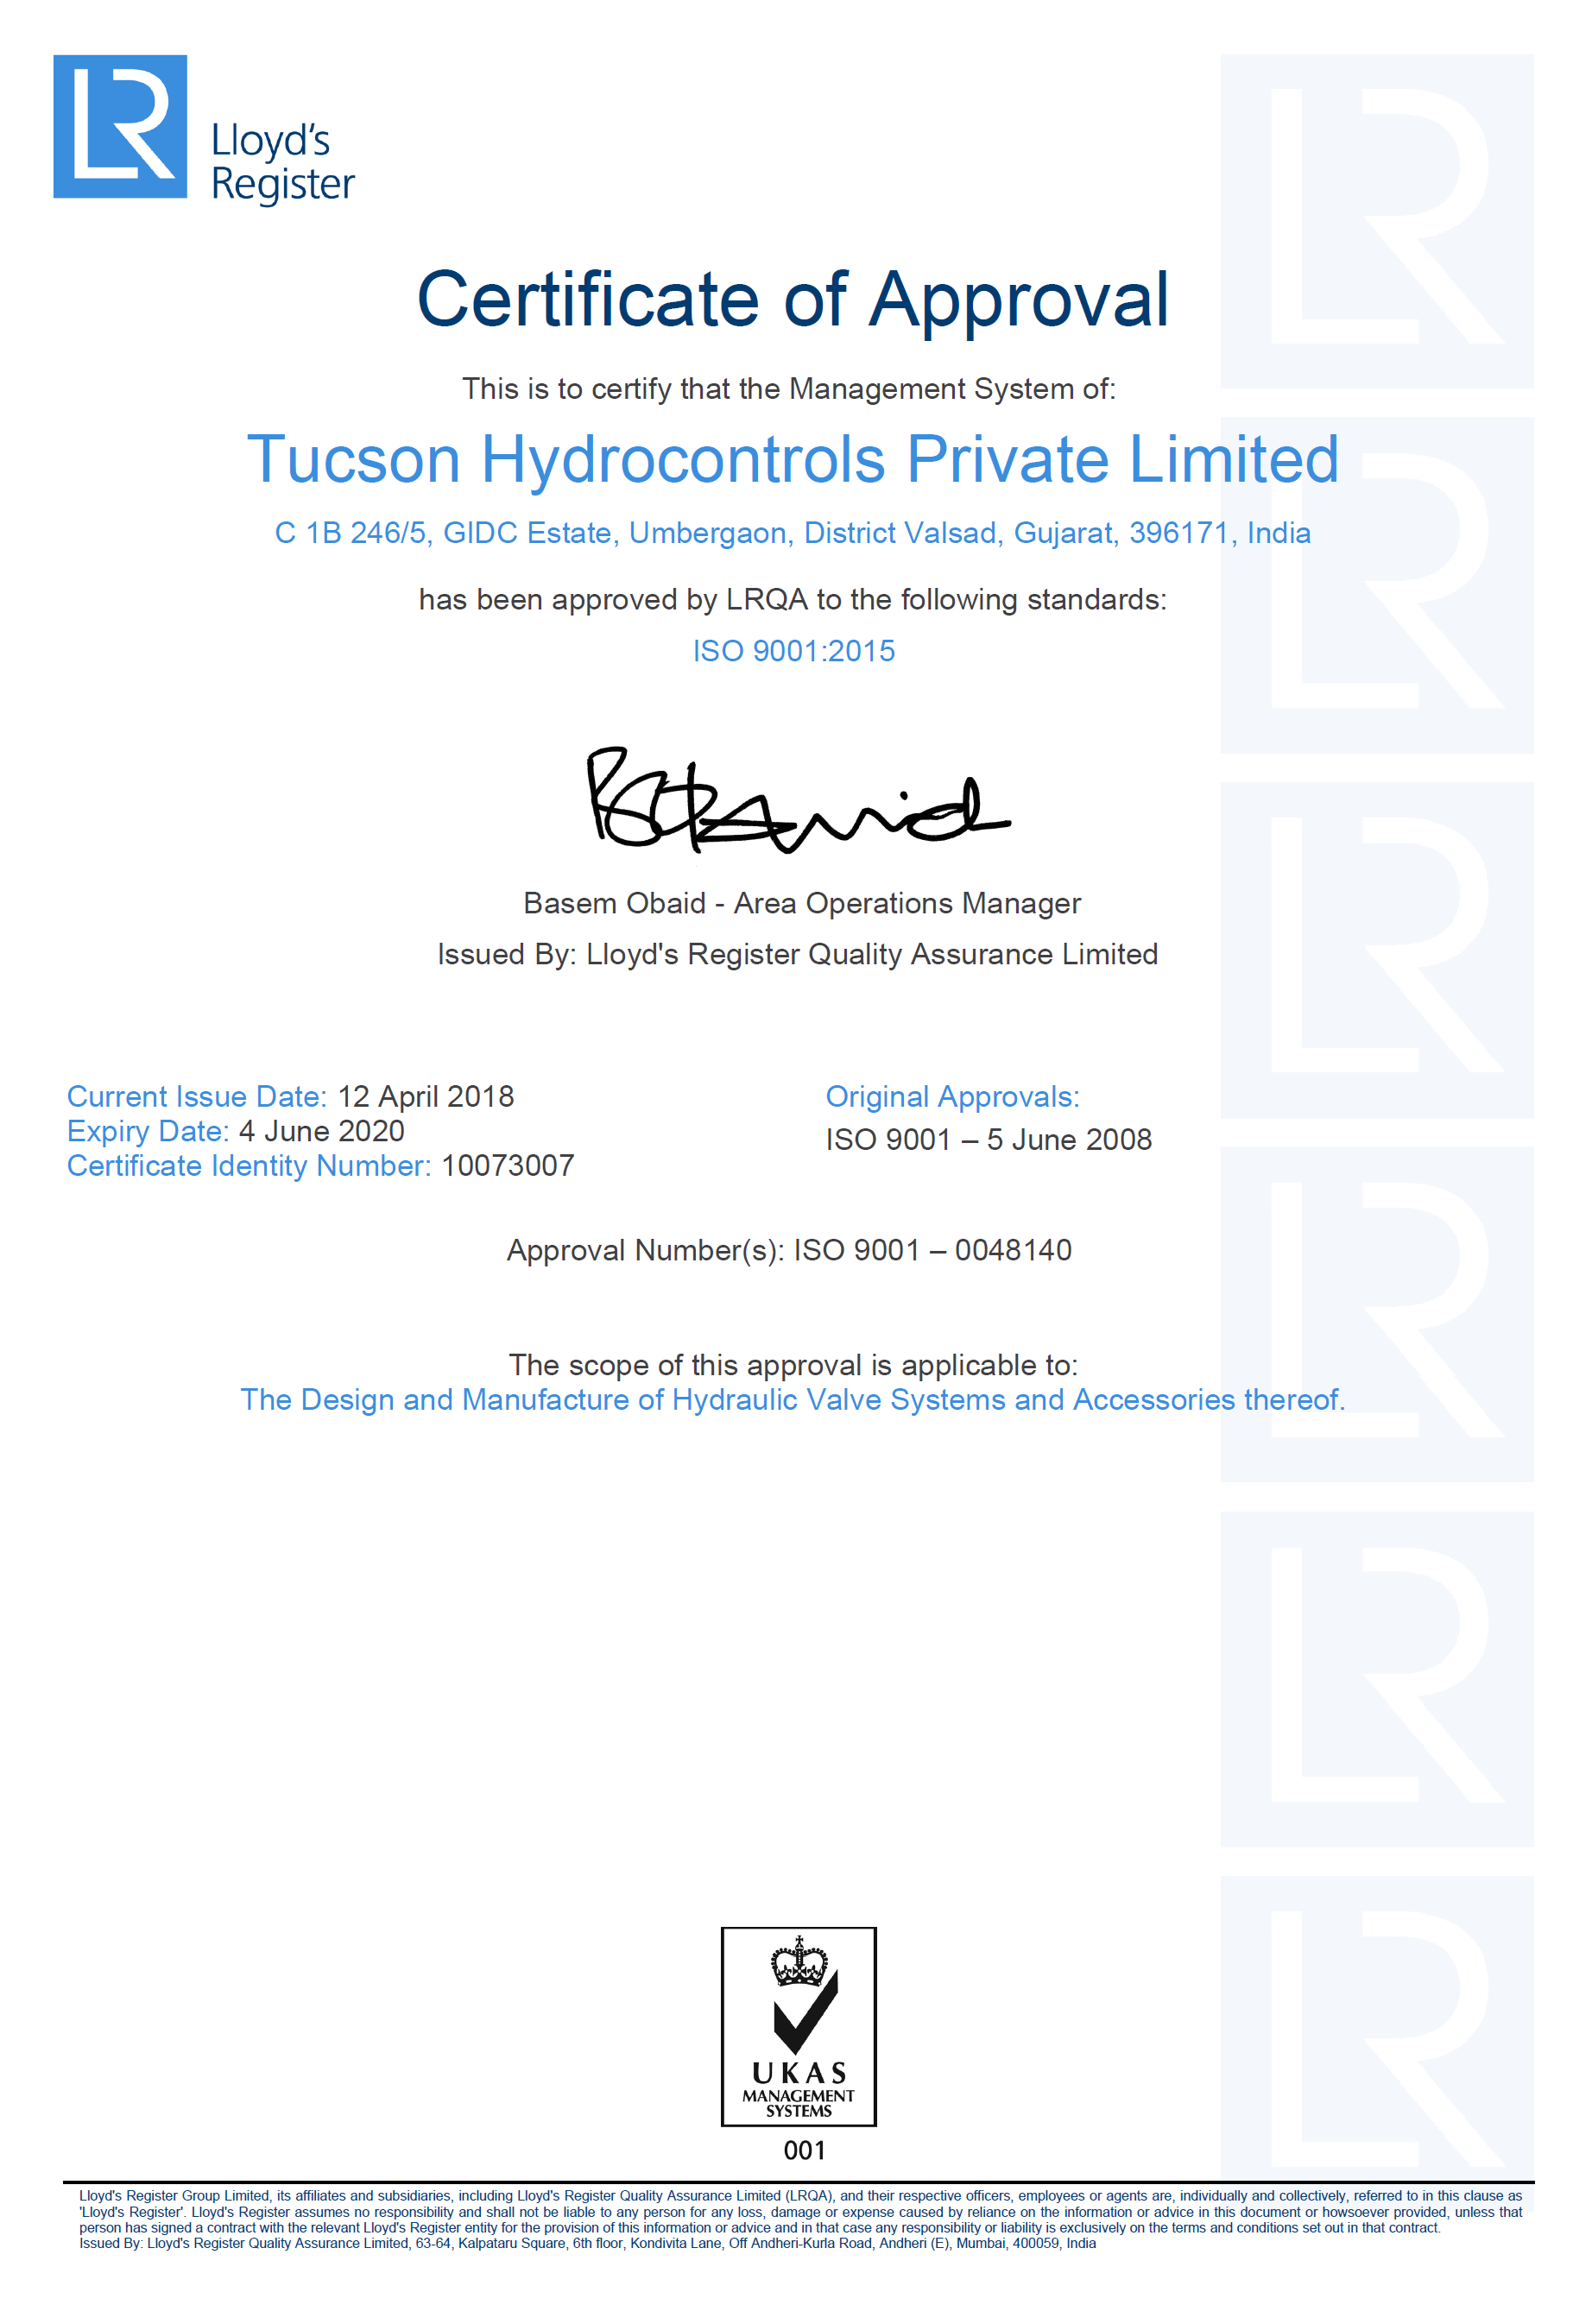 ISO 9001.2015 Certificate - THPL 2020.06.04 - 10073007